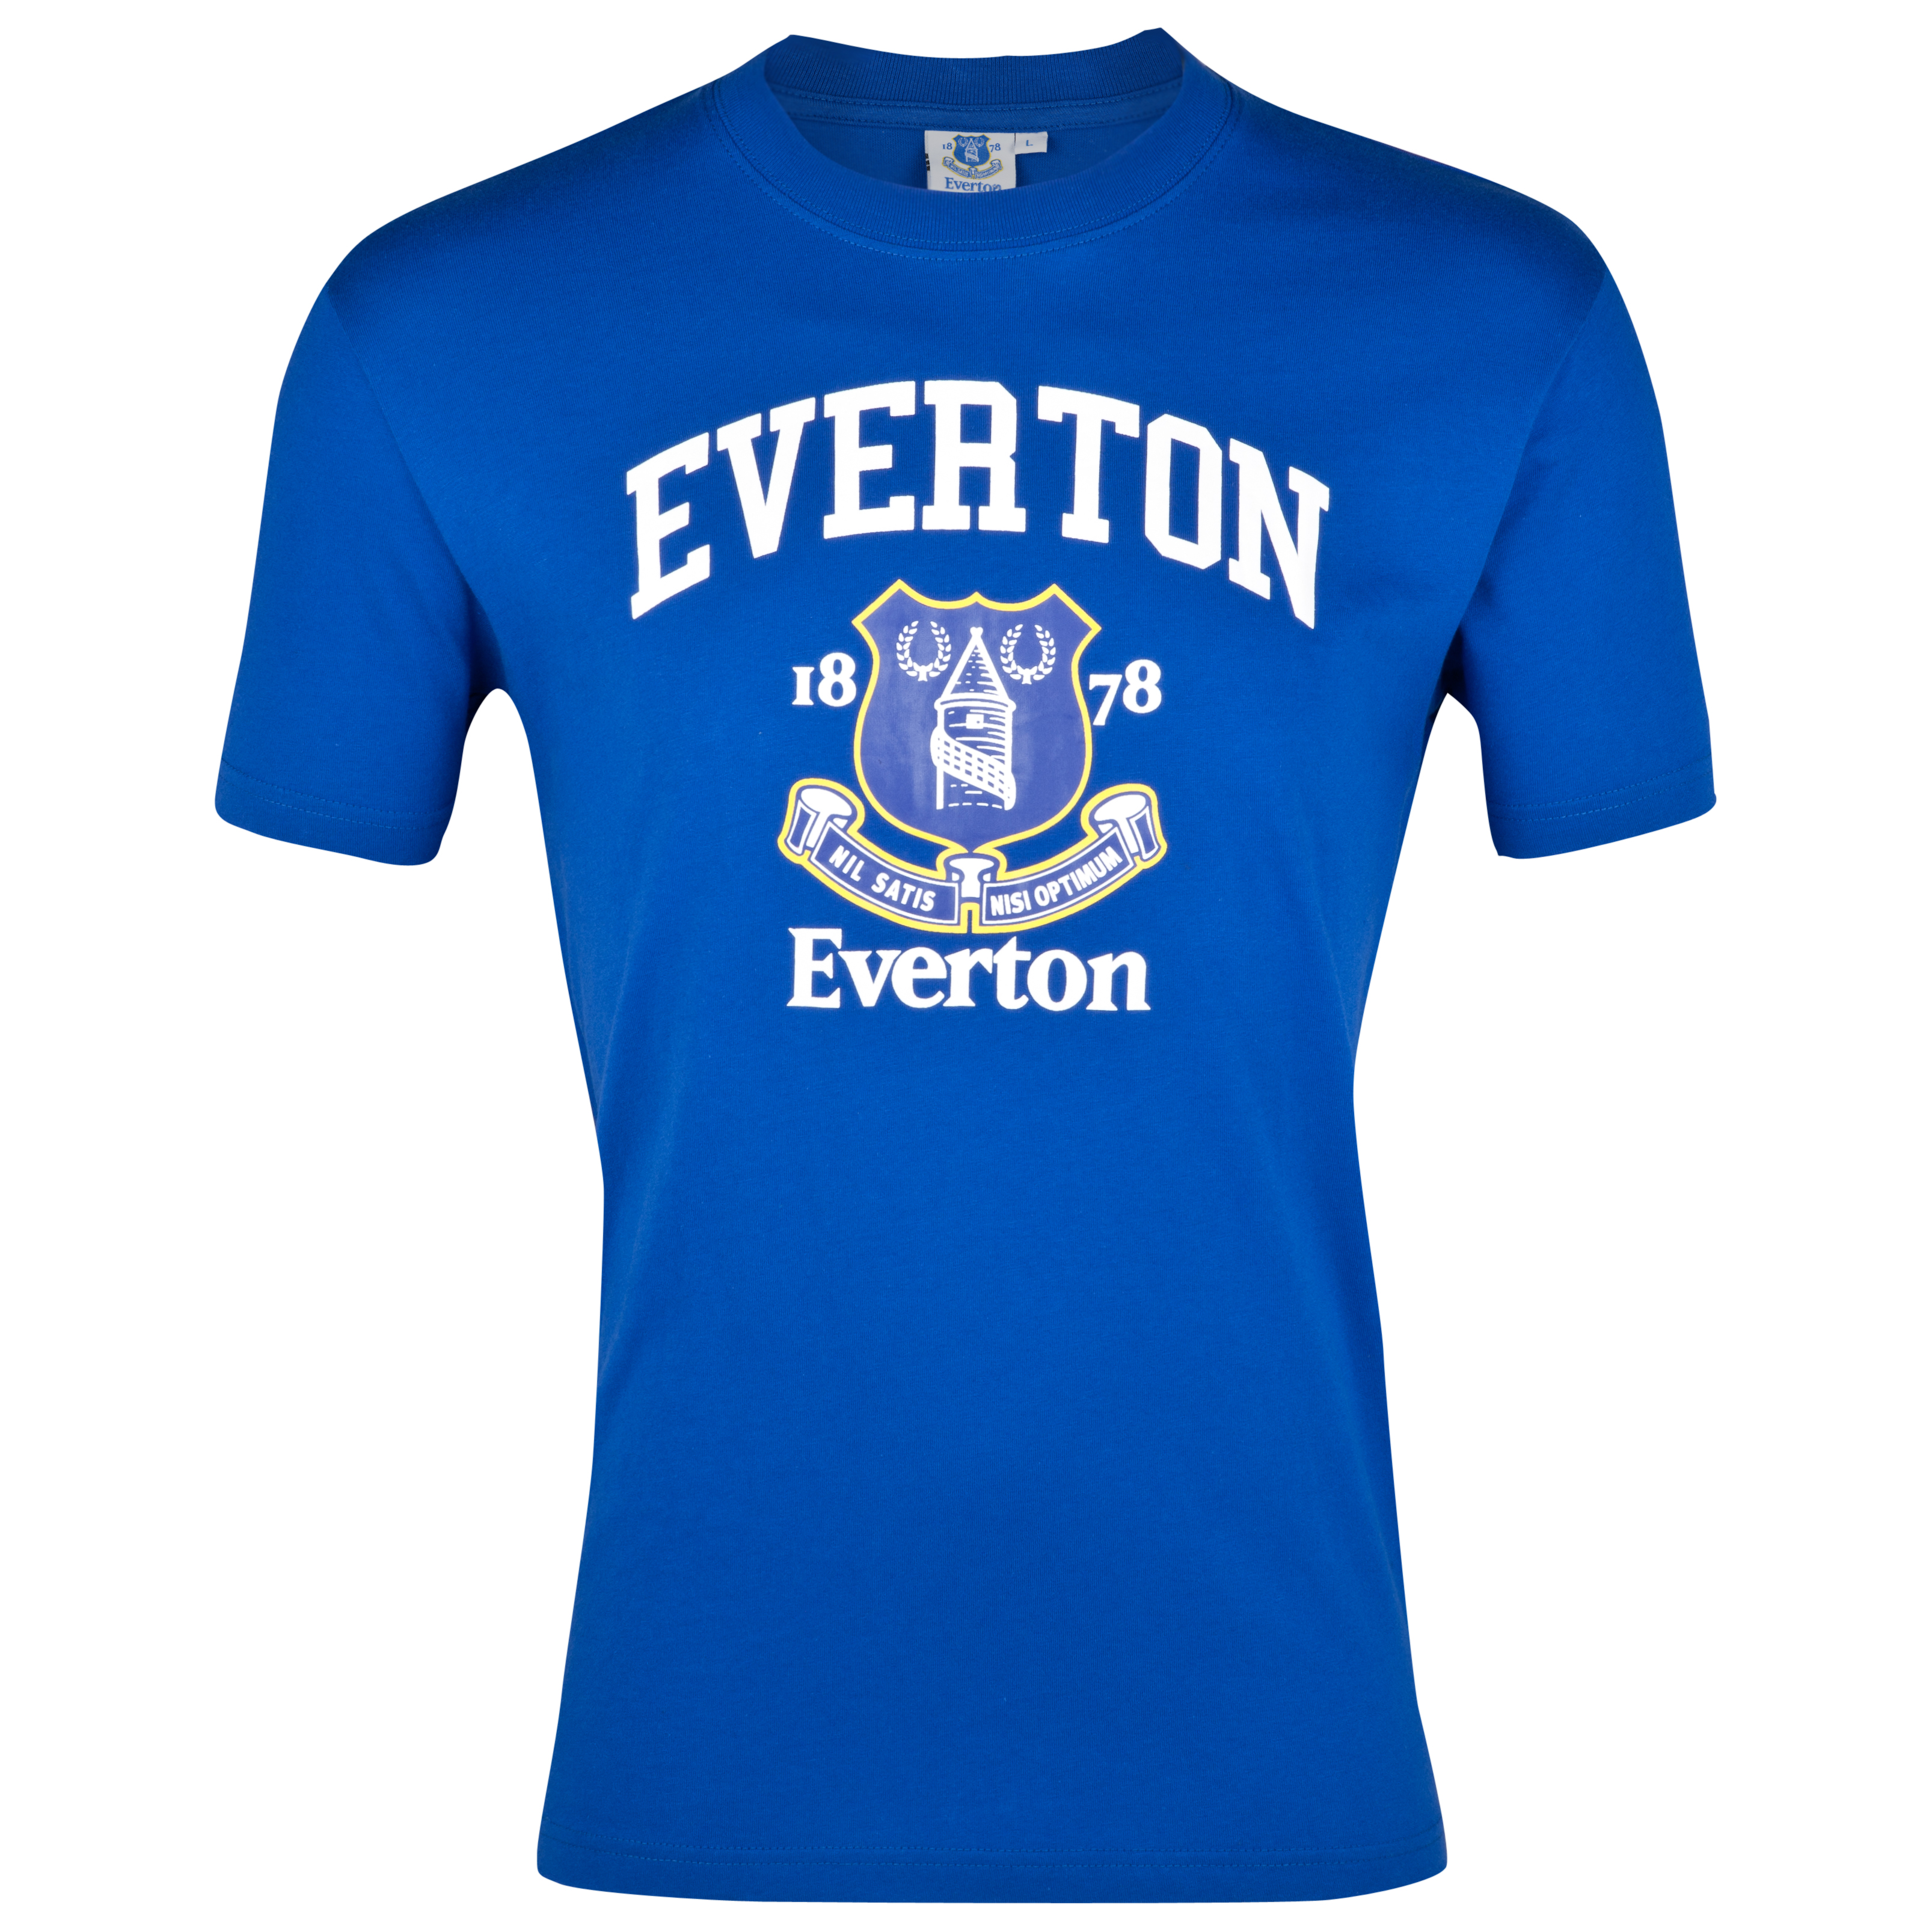 Everton Essential Faith Graphic T-Shirt - Everton Blue - Older Boys